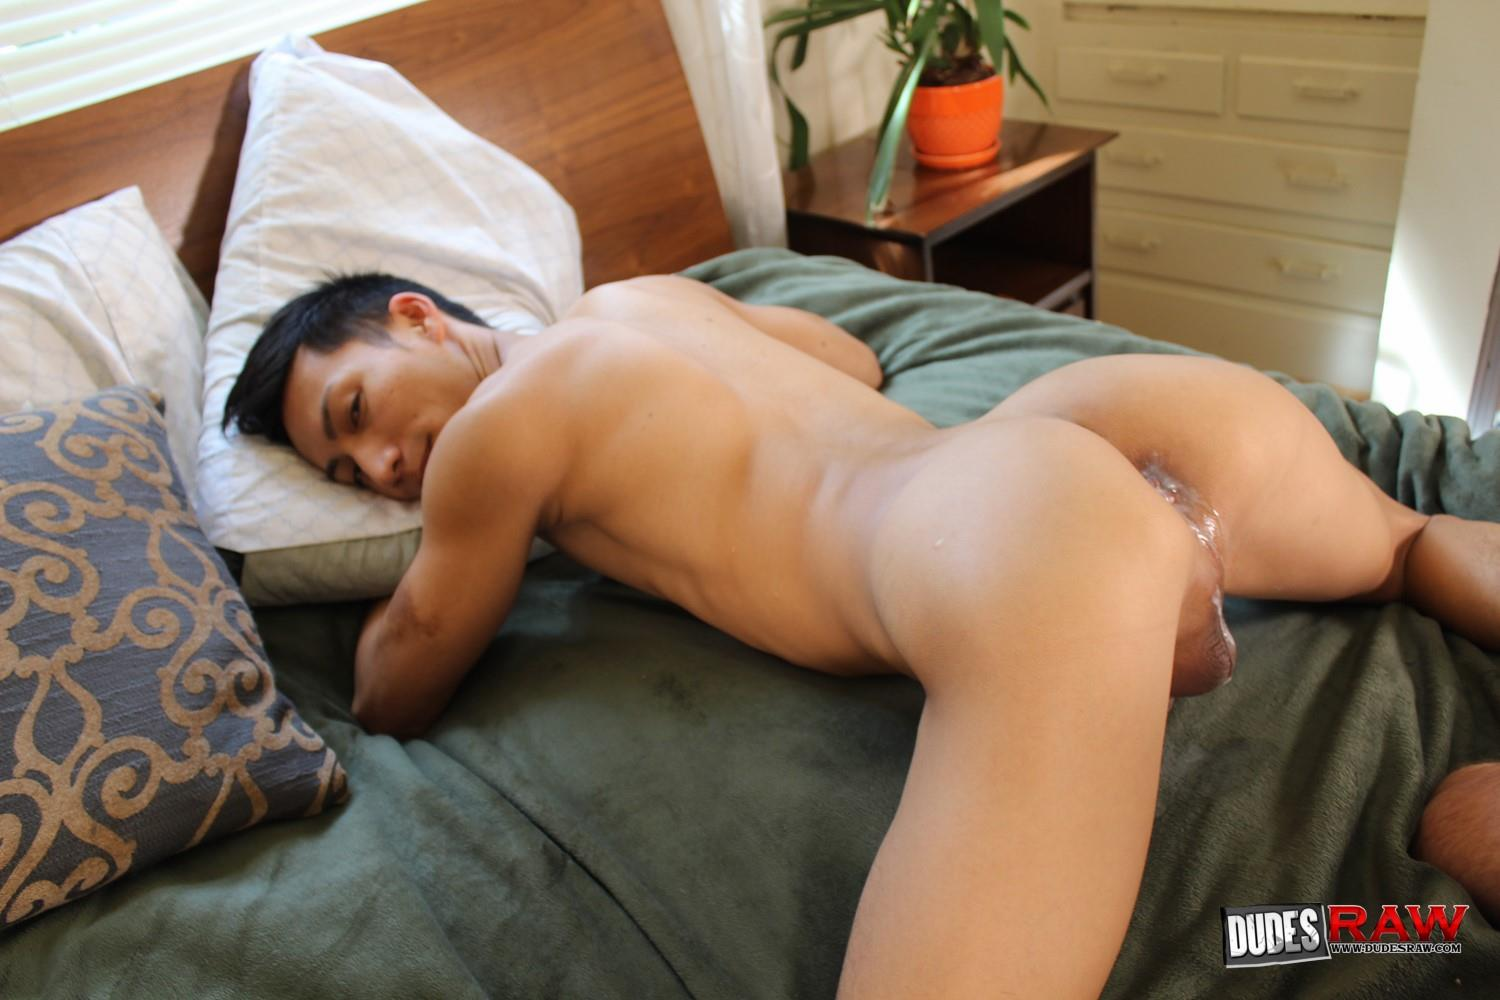 Dudes-Raw-Tristan-Mathews-and-David-Ace-Gay-Bareback-Creampie-Video-16 Tristan Mathews Creampies A Hot Tight Hole